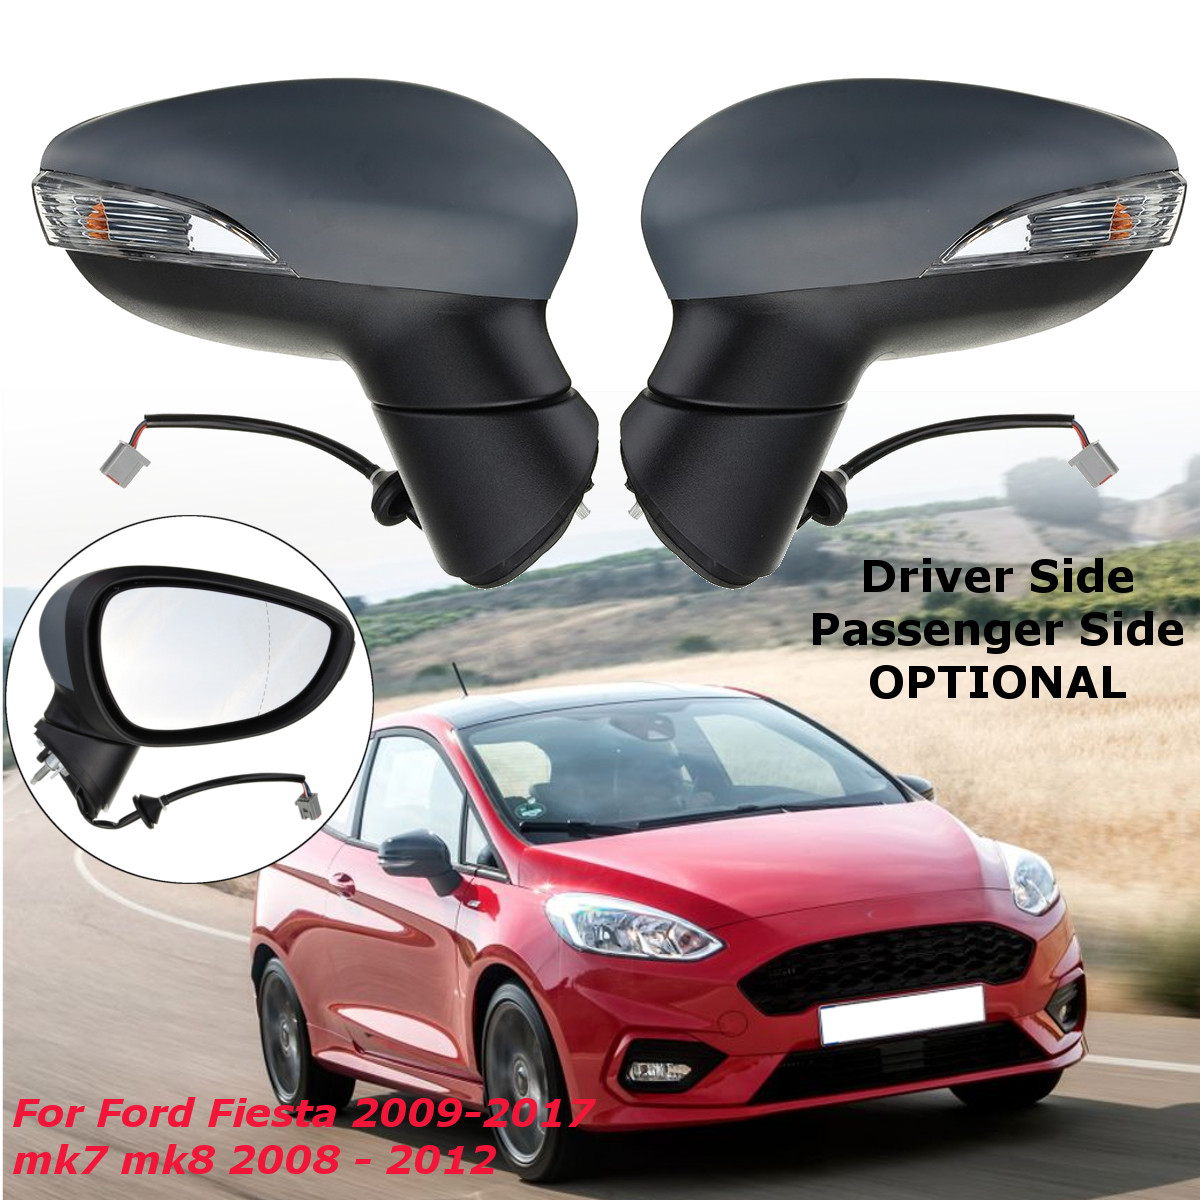 FORD FOCUS RS 05-11 WATERPROOF CAR COVER UV FROST PROTECTION BREATHABLE SIZE G